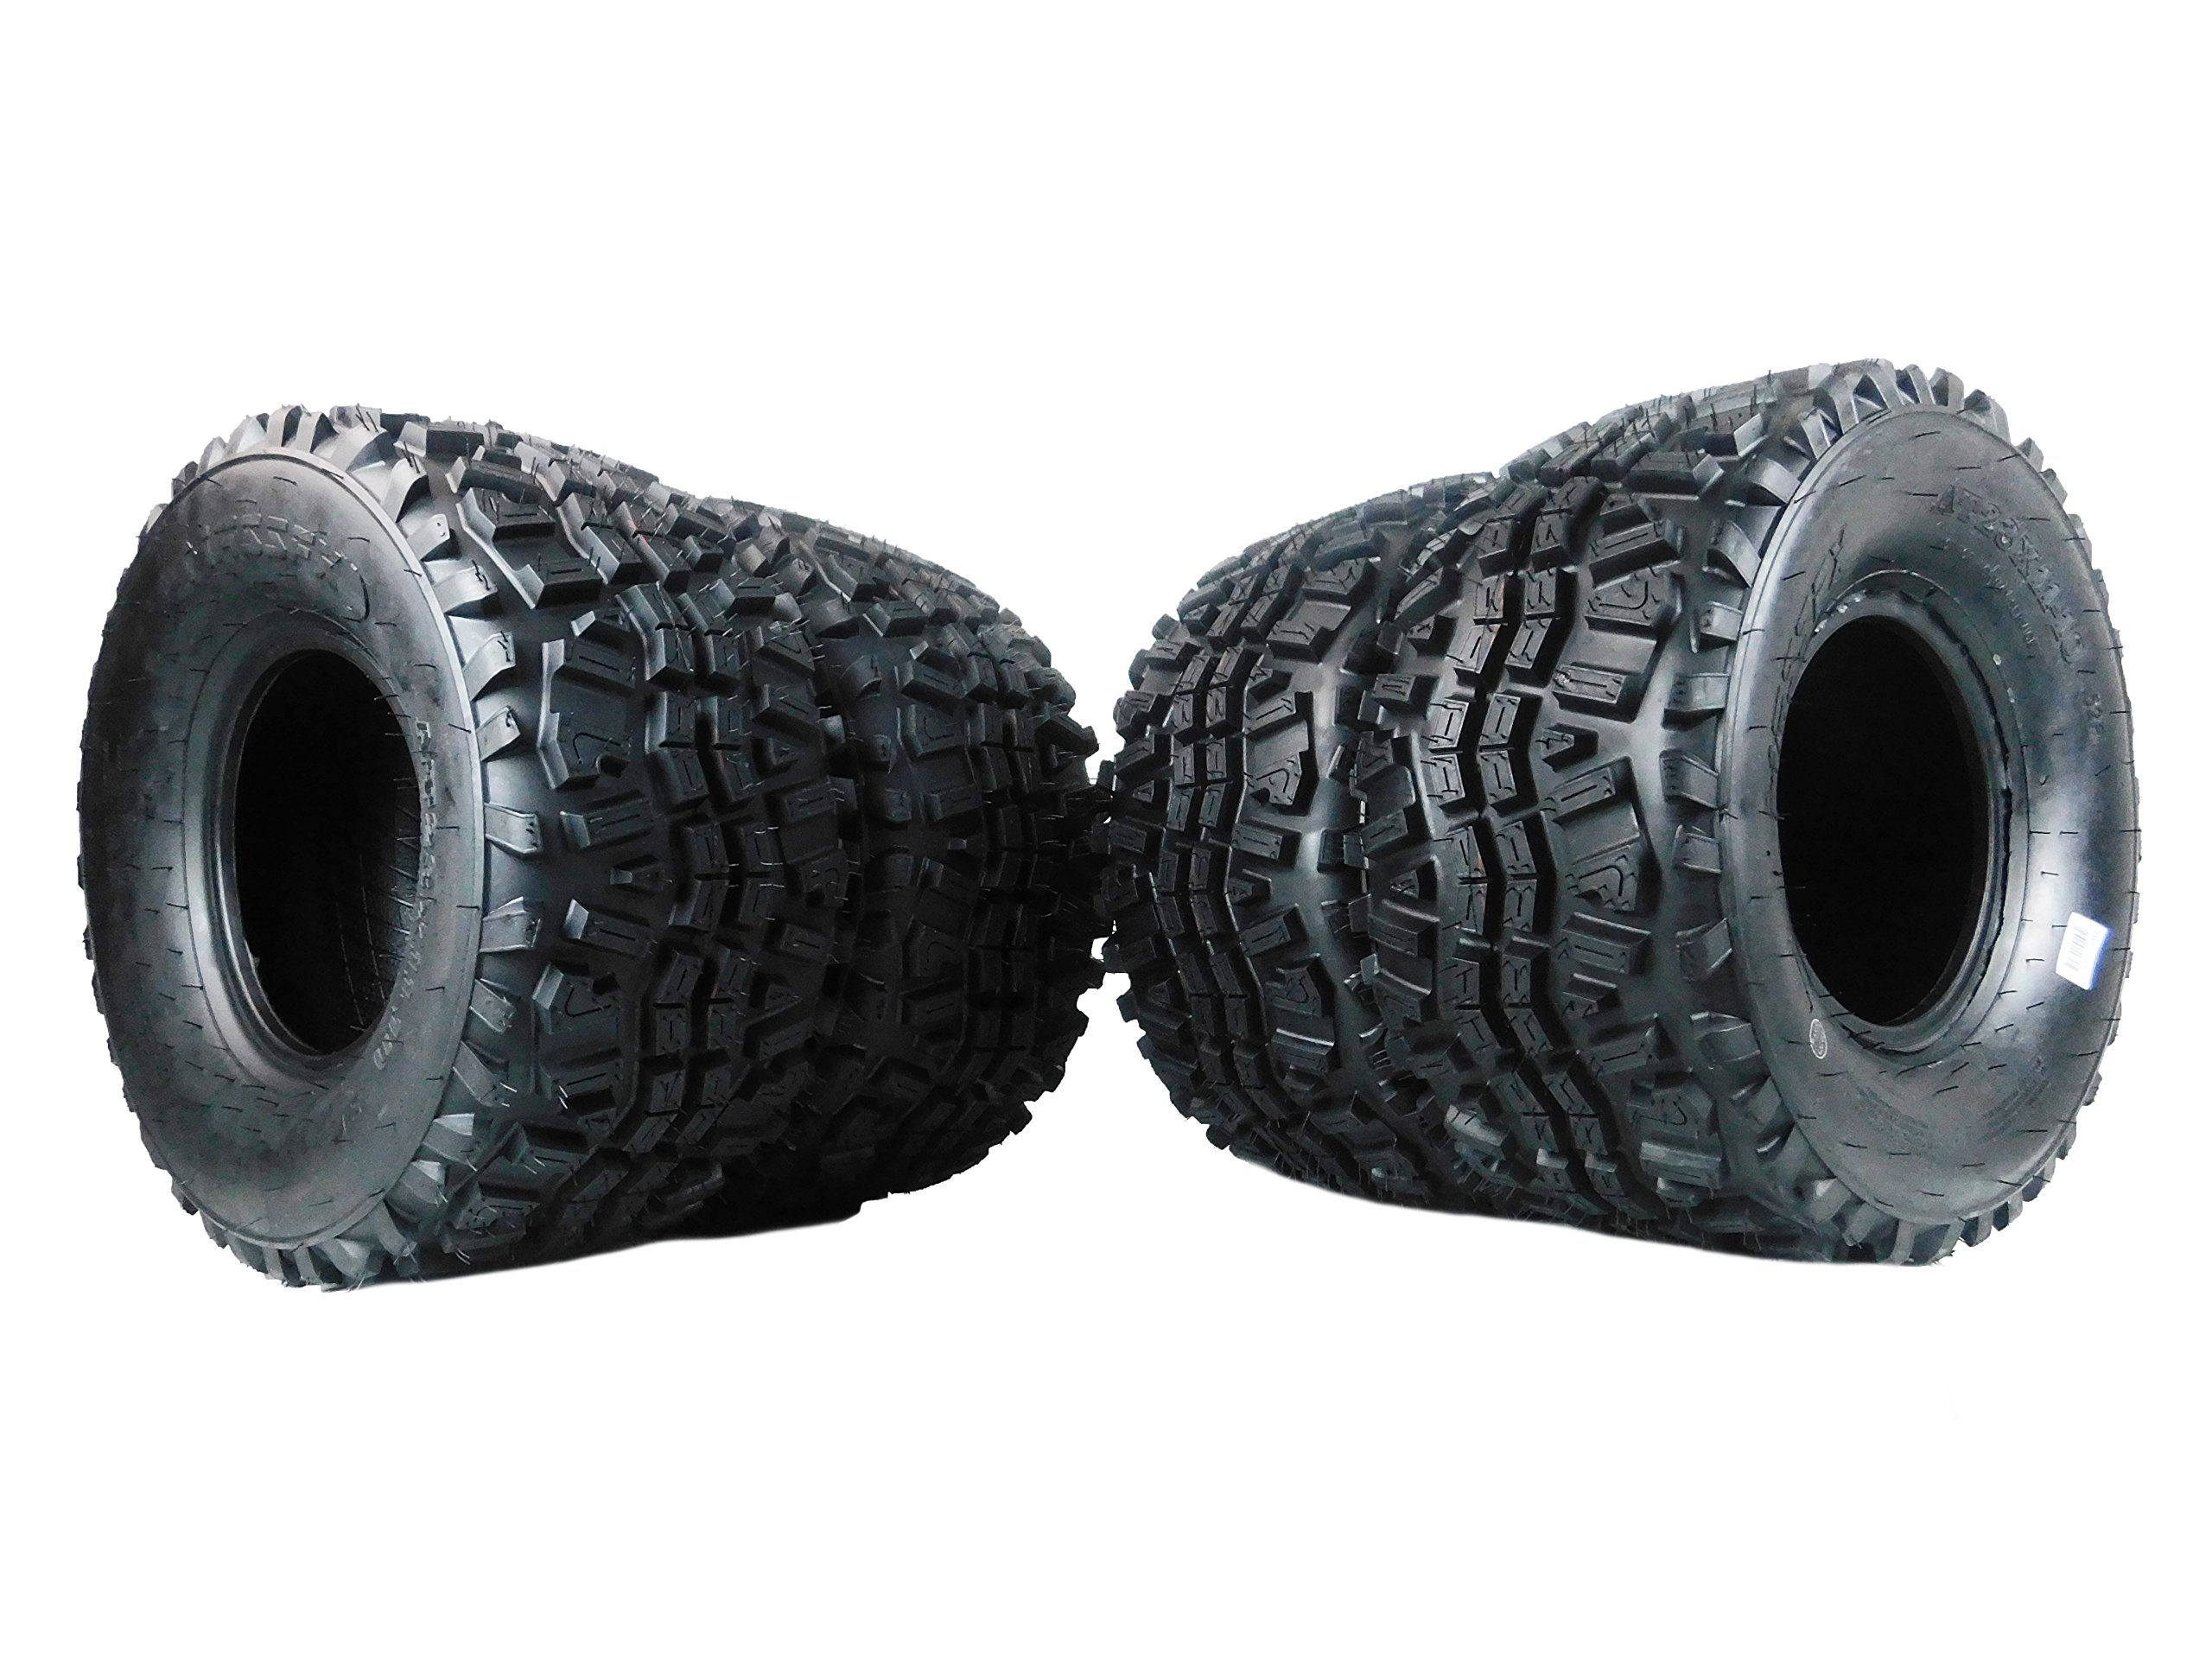 New MASSFX VS231110 ATV Tires 23X11X10 23x11-10 OEM Kawasaki Mule Tires 6 Ply 4 set by MASSFX